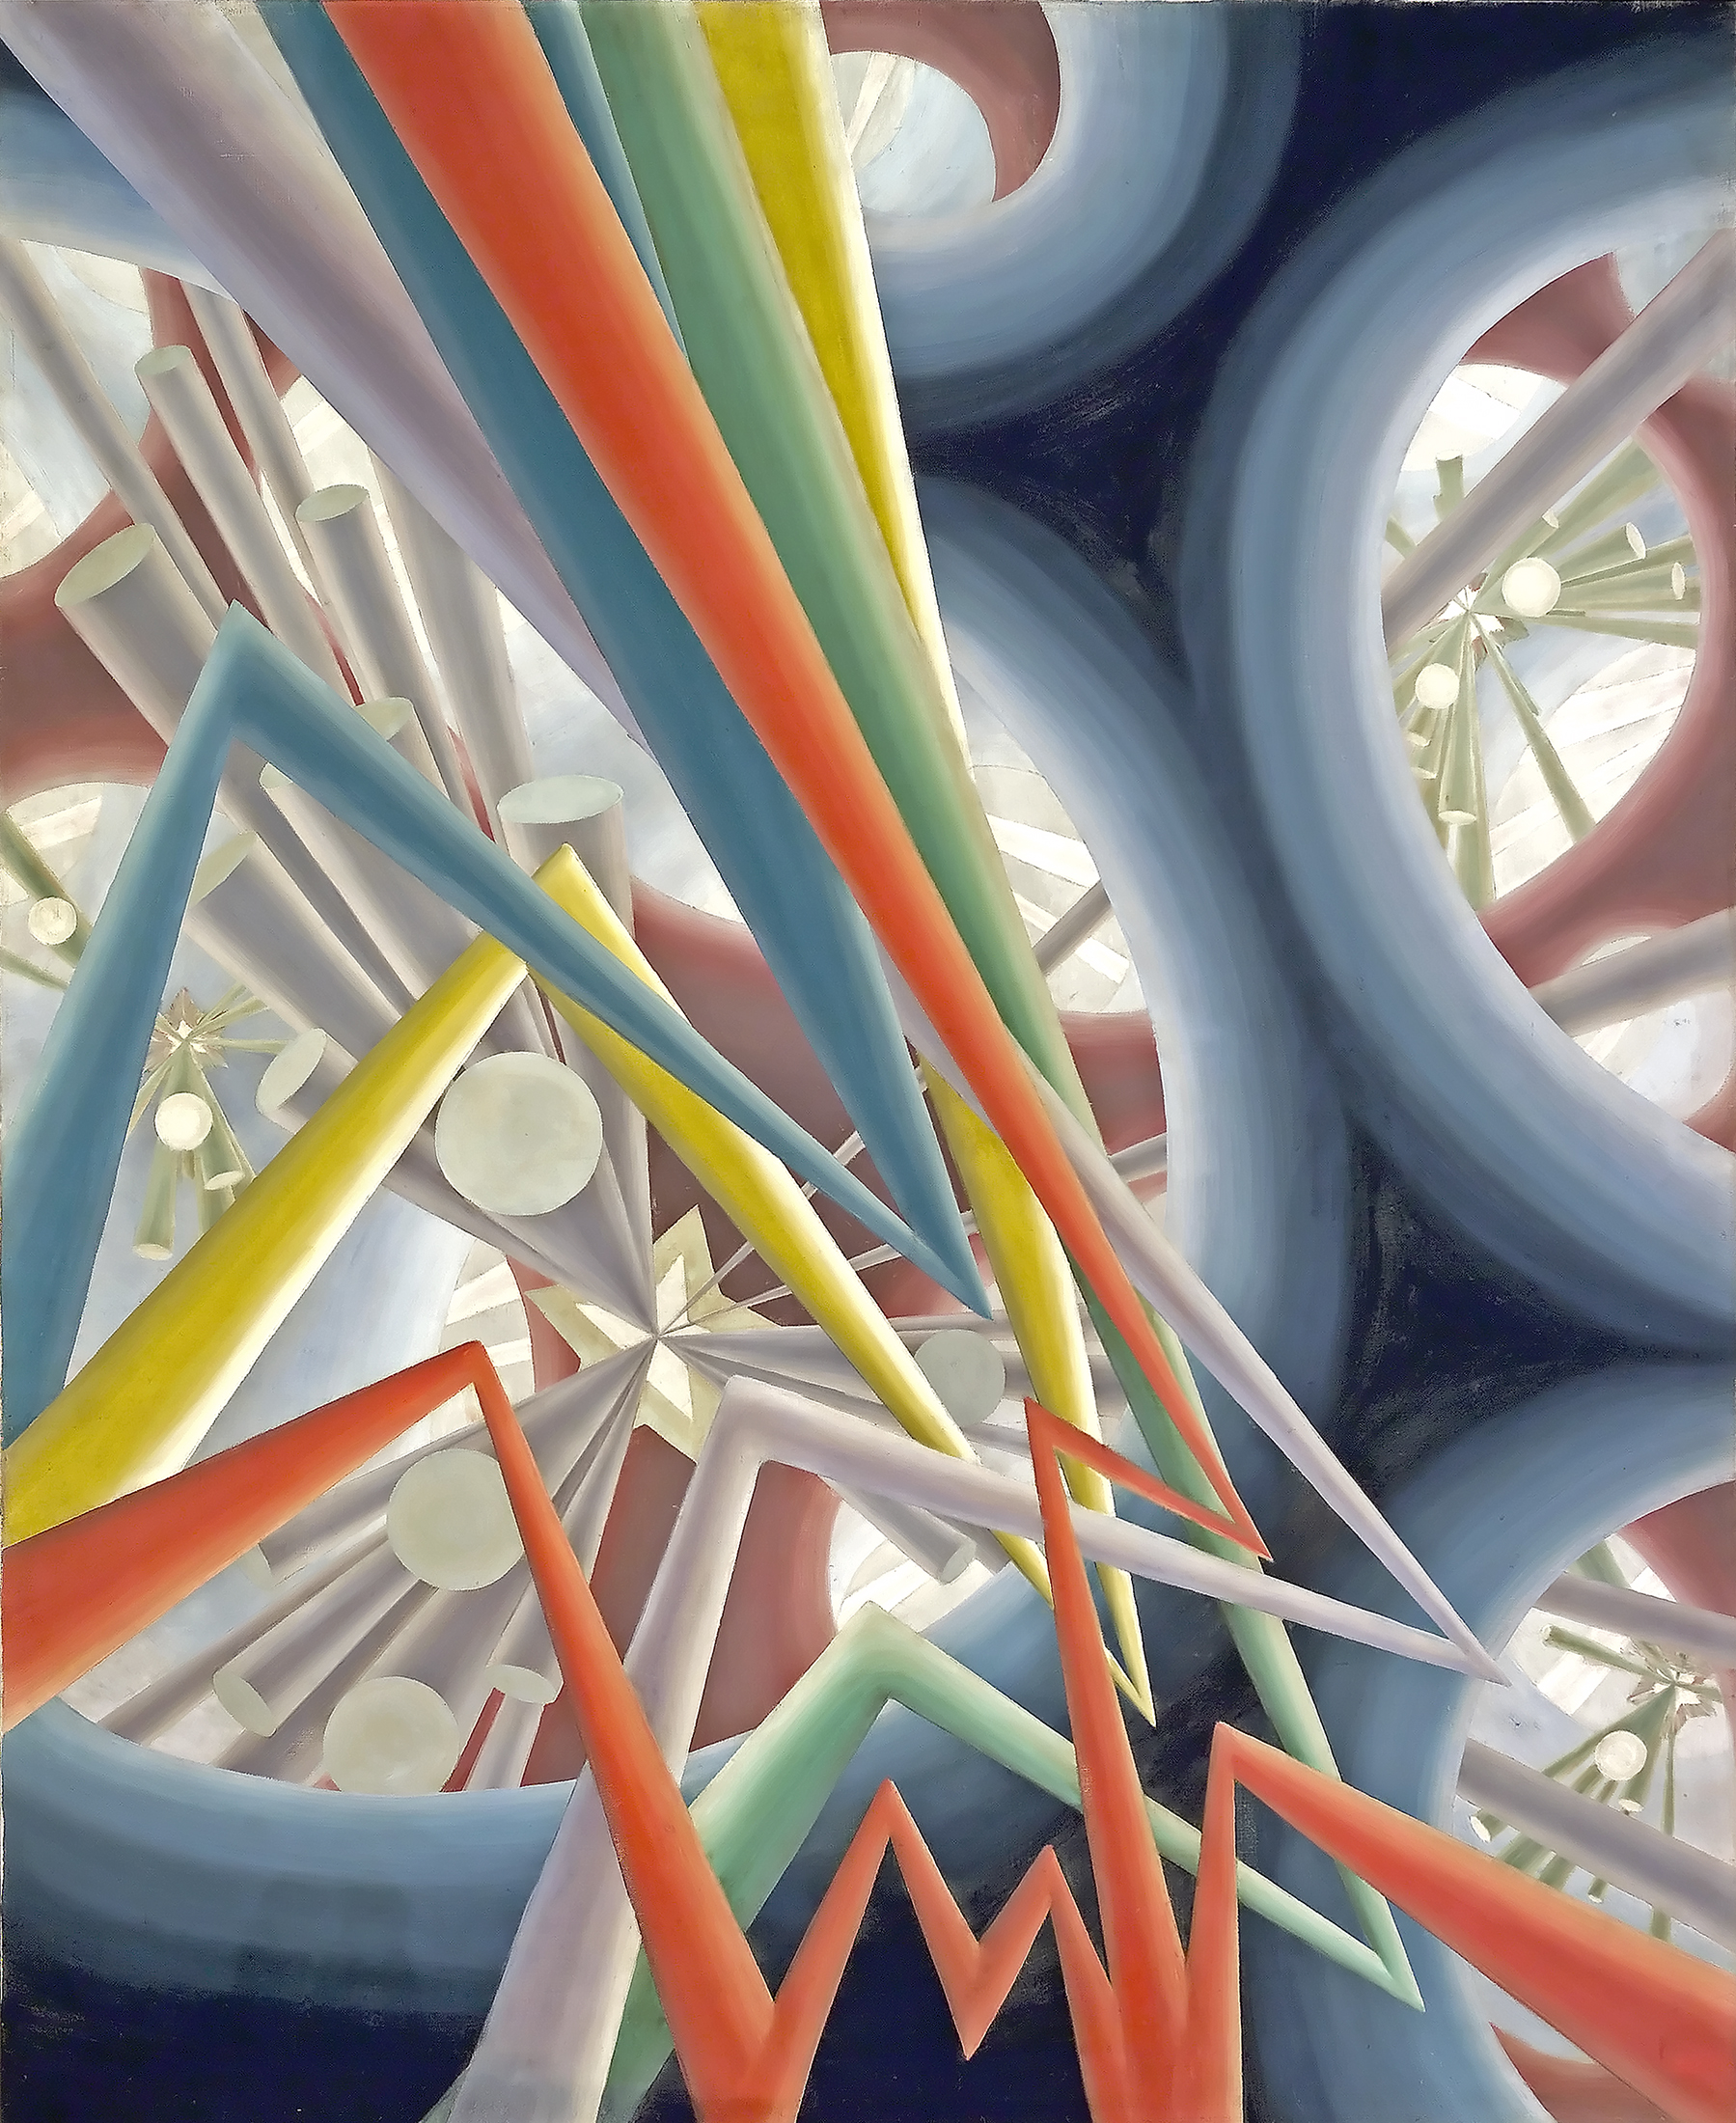 Tubes of bright colours shoot from the centre of the image, zigzagging in different directions and extending beyond the edges. In the background, futuristic conical forms emerge from the centre of large blue circles to heighten the impression of depth.